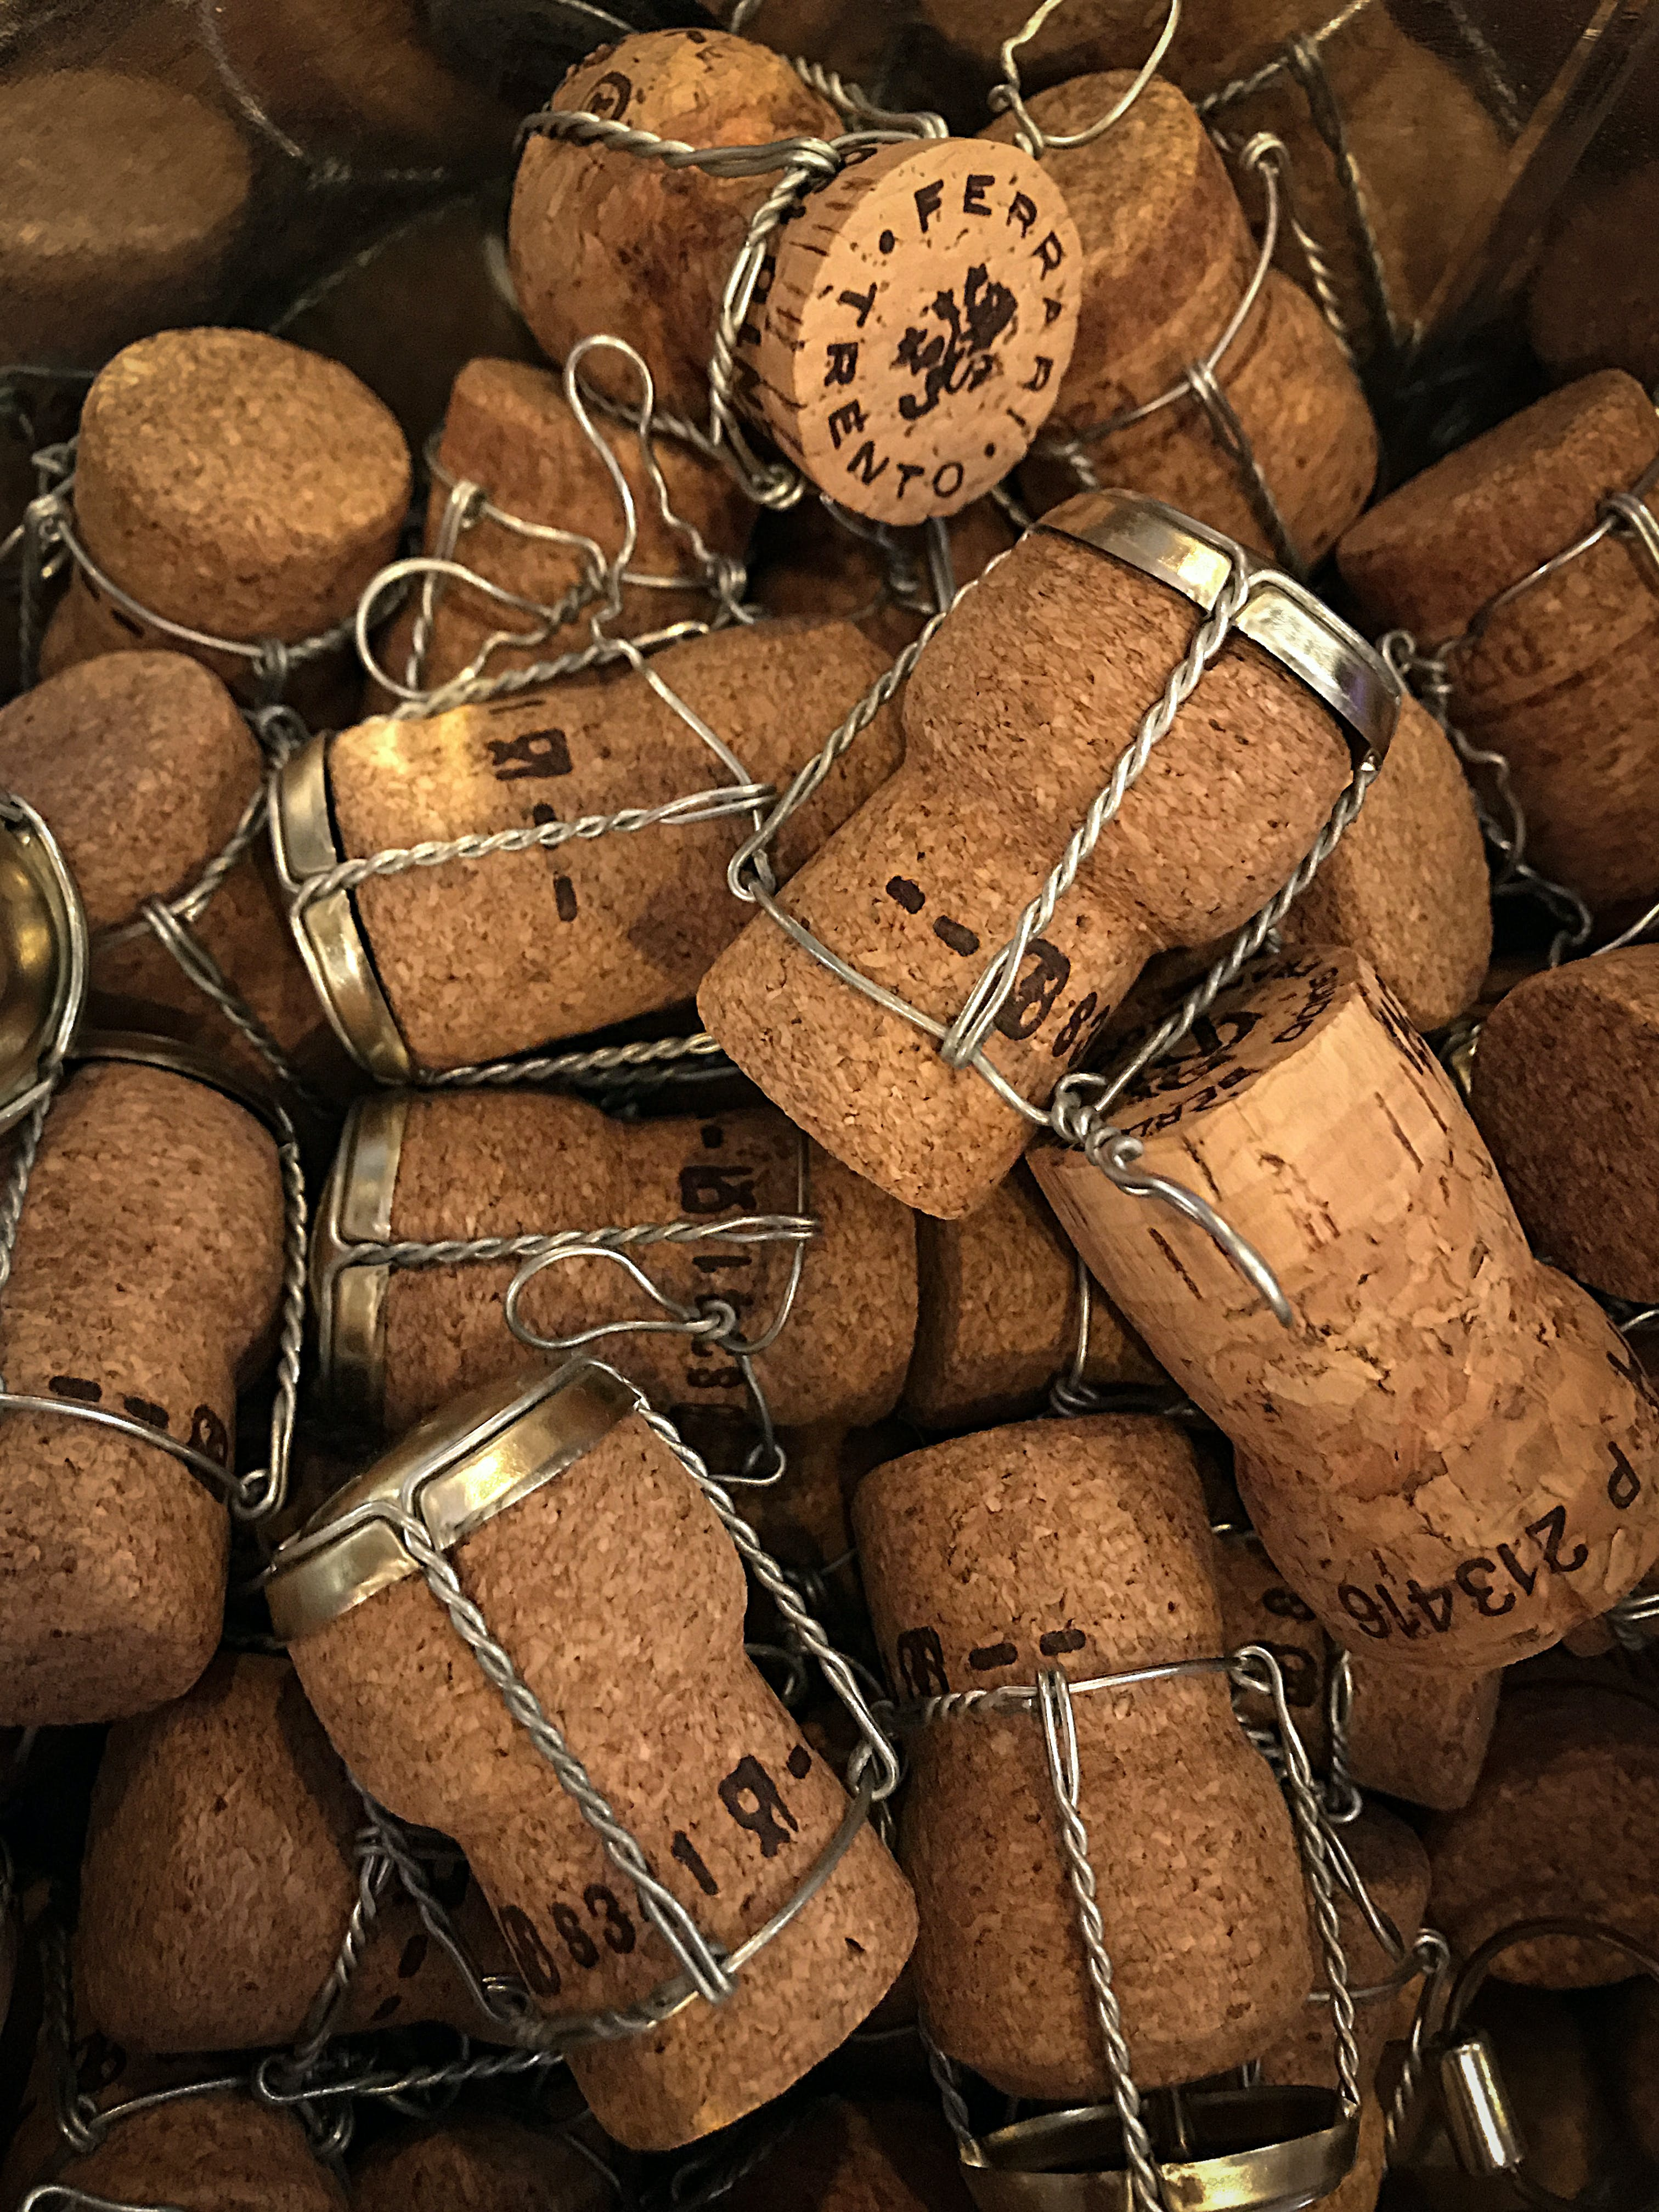 Free stock photo of texture, corks